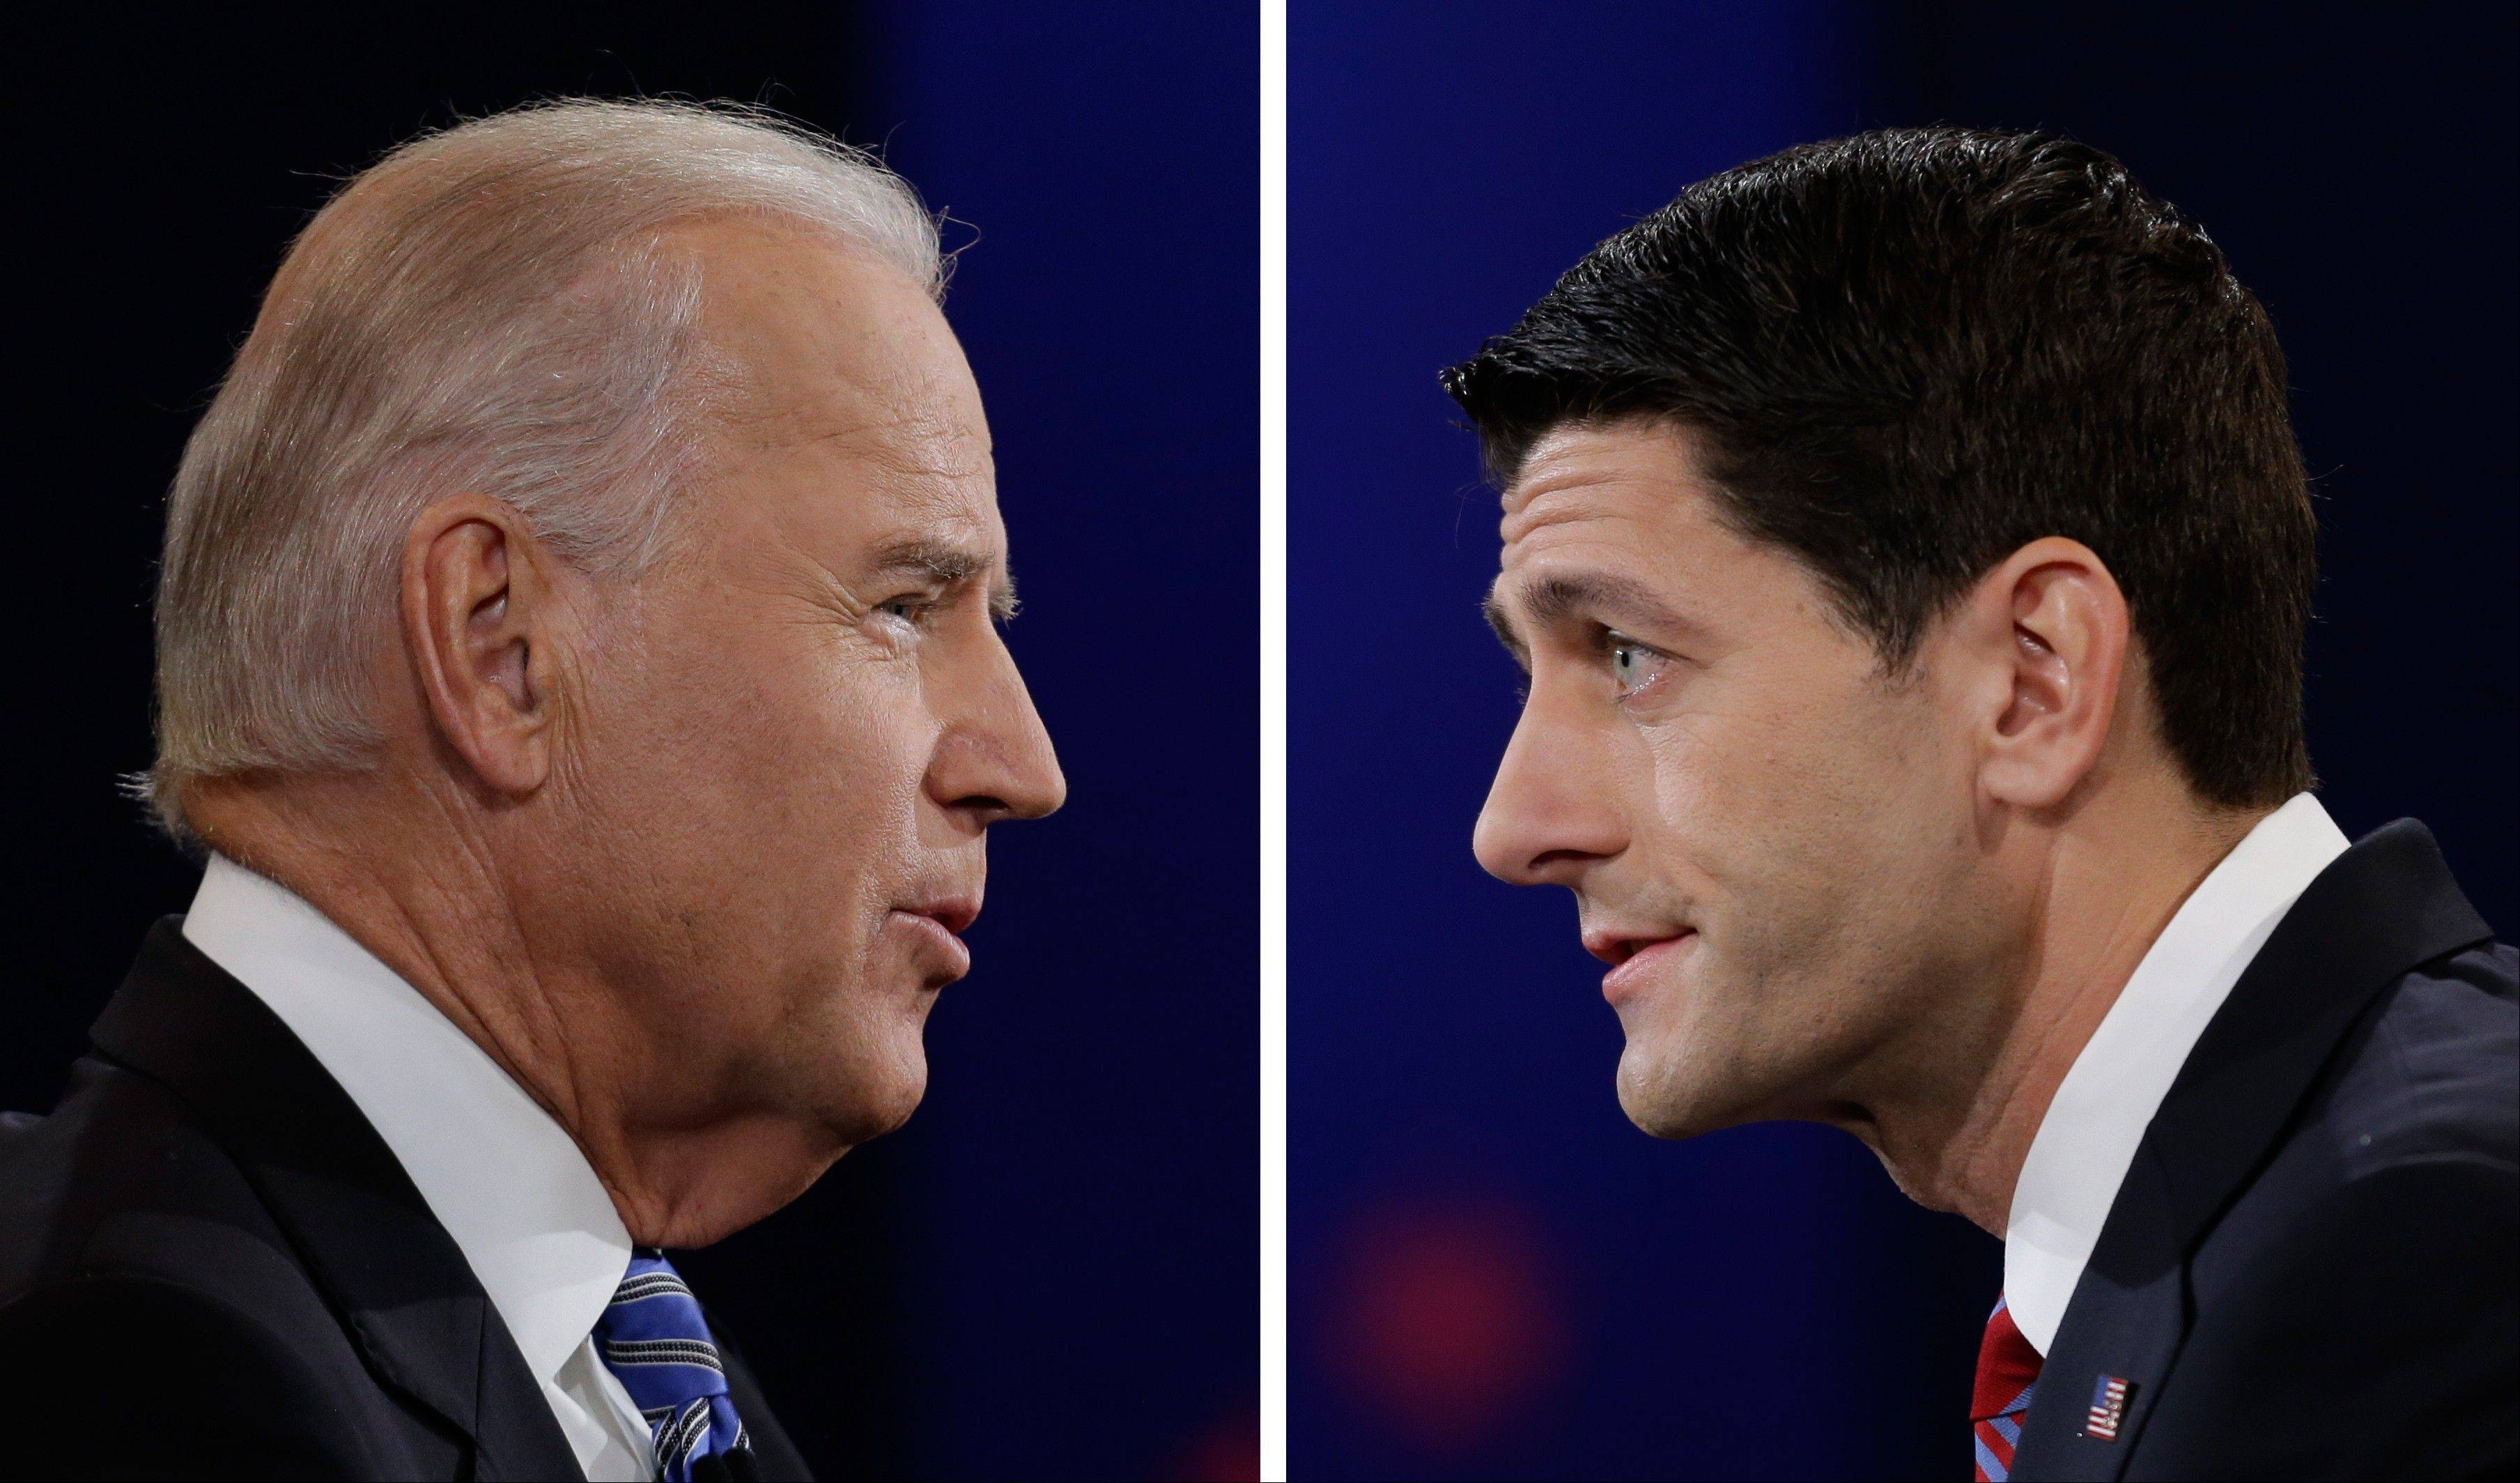 Vice President Joe Biden, left, and Republican vice presidential nominee Paul Ryan of Wisconsin face off during the vice presidential debate at Centre College Thursday in Danville, Ky.